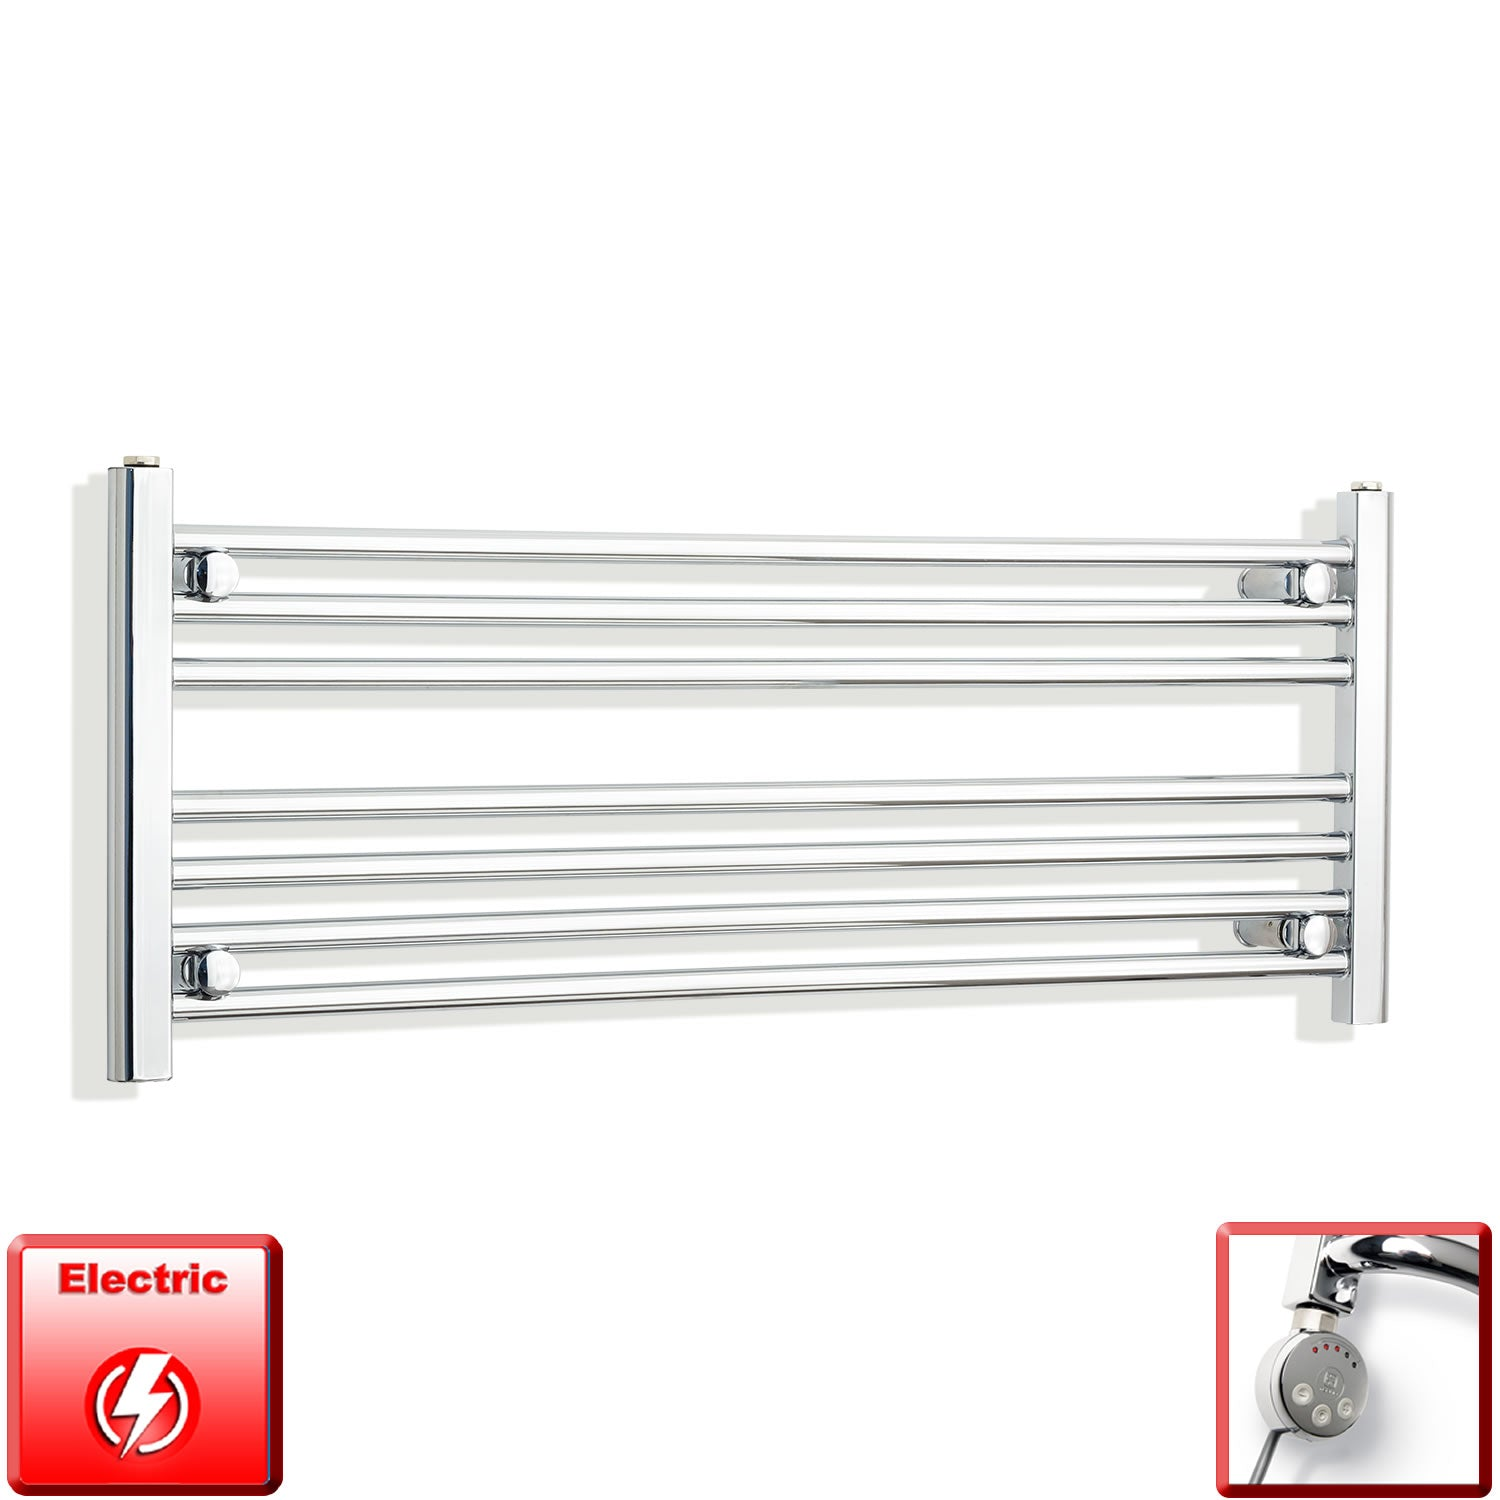 1300mm Wide 400mm High Pre-Filled Chrome Electric Towel Rail Radiator With Thermostatic MEG Element